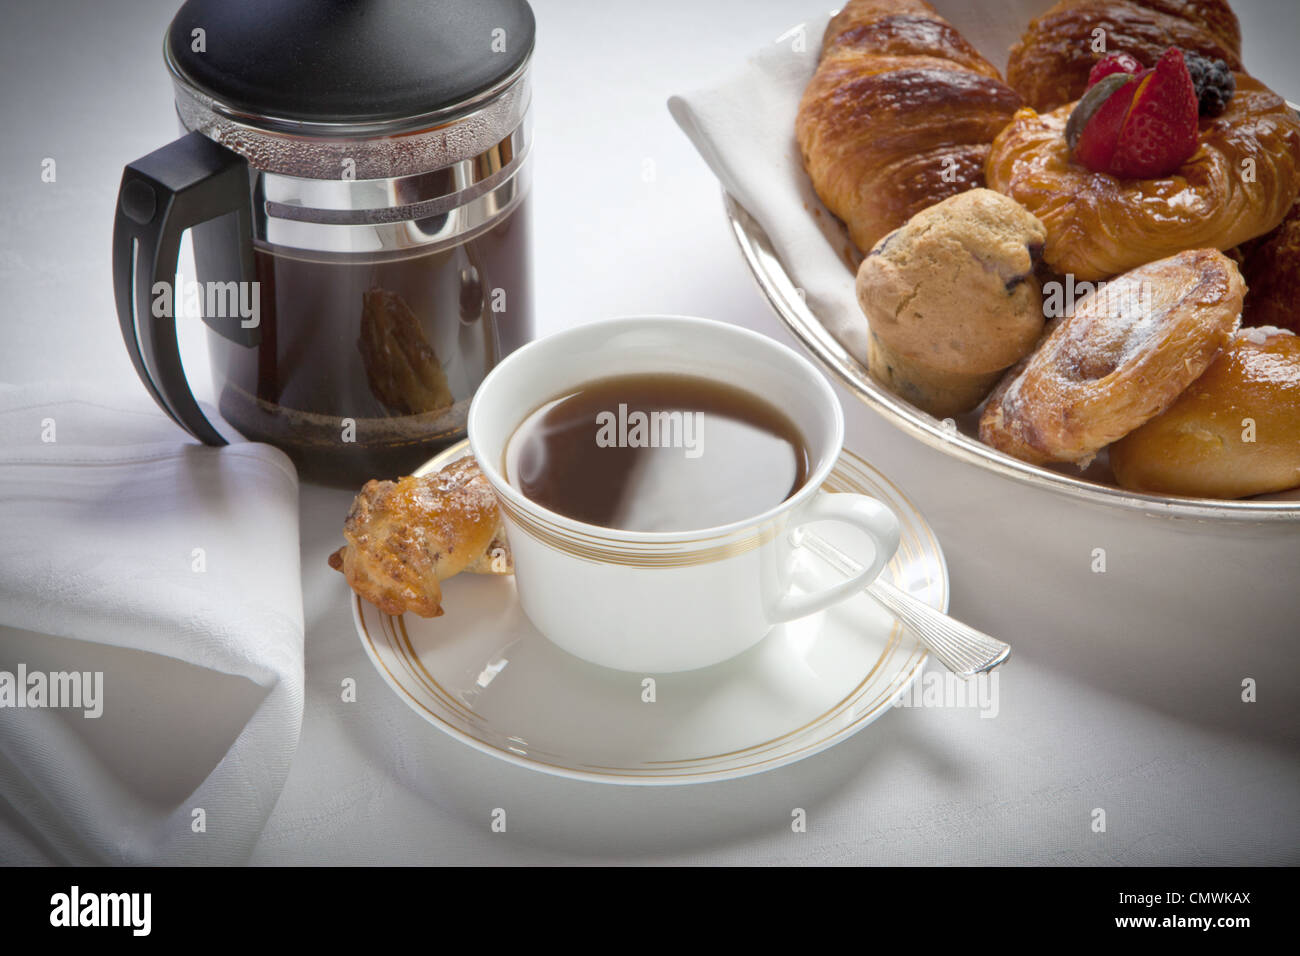 breakfast cup of white coffee and cafetiere and with pastries , laid out on a white linen tablecloth - Stock Image